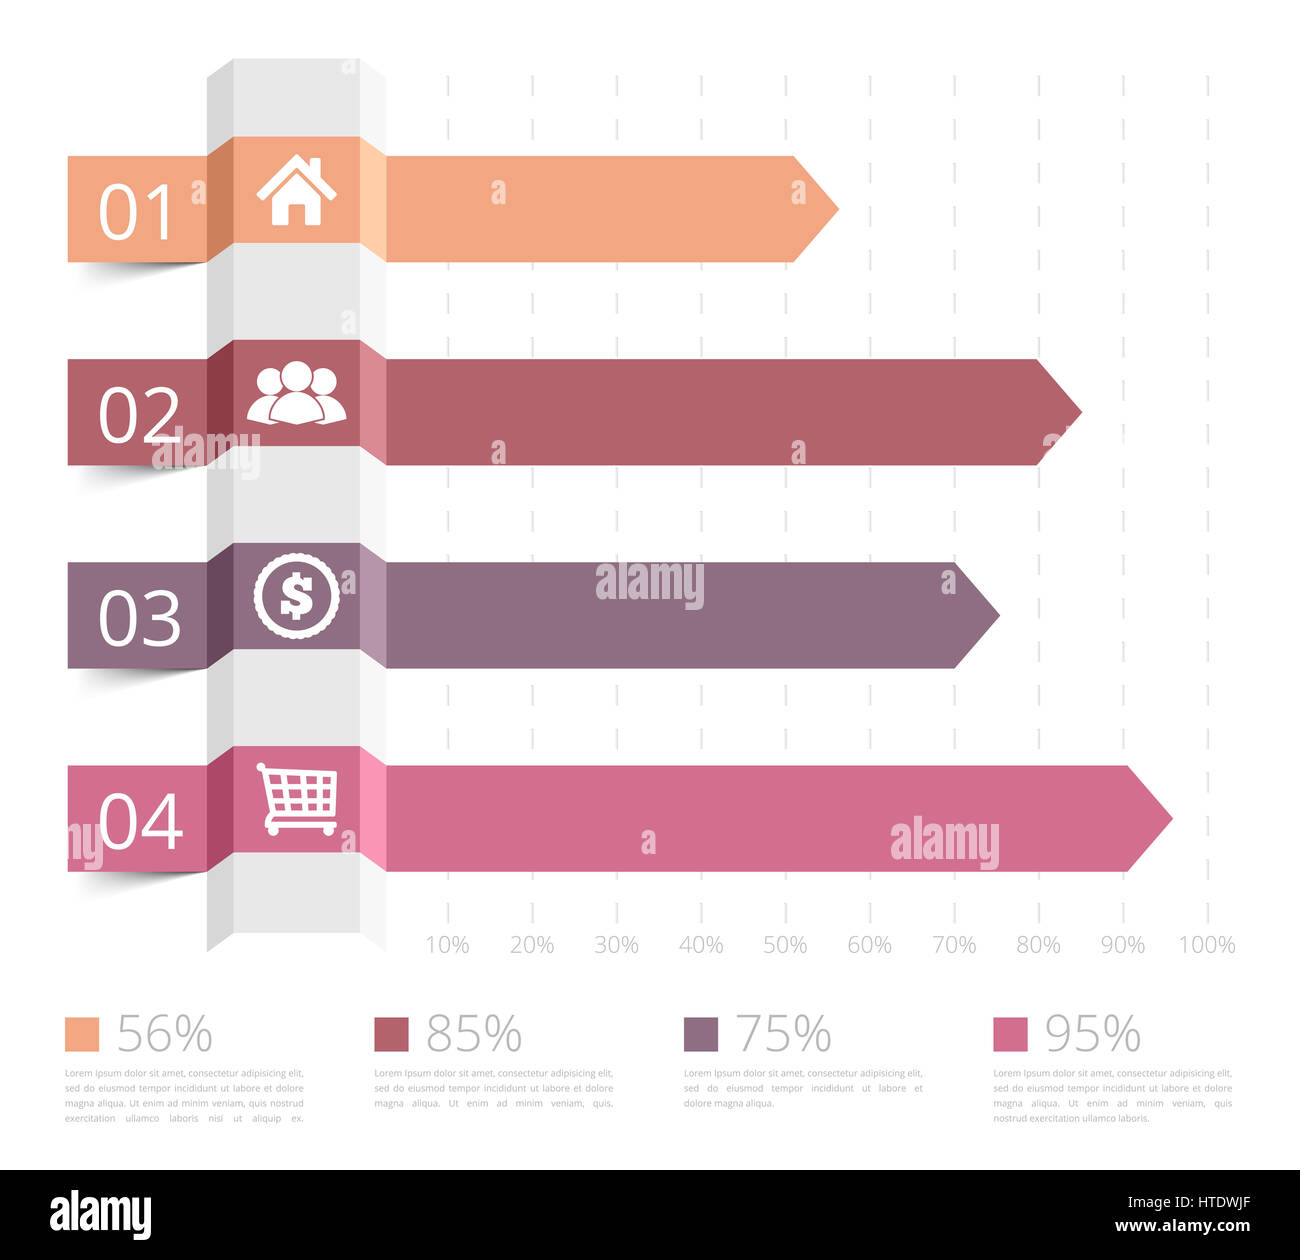 Horizontal bar chart with numbers and icons, business